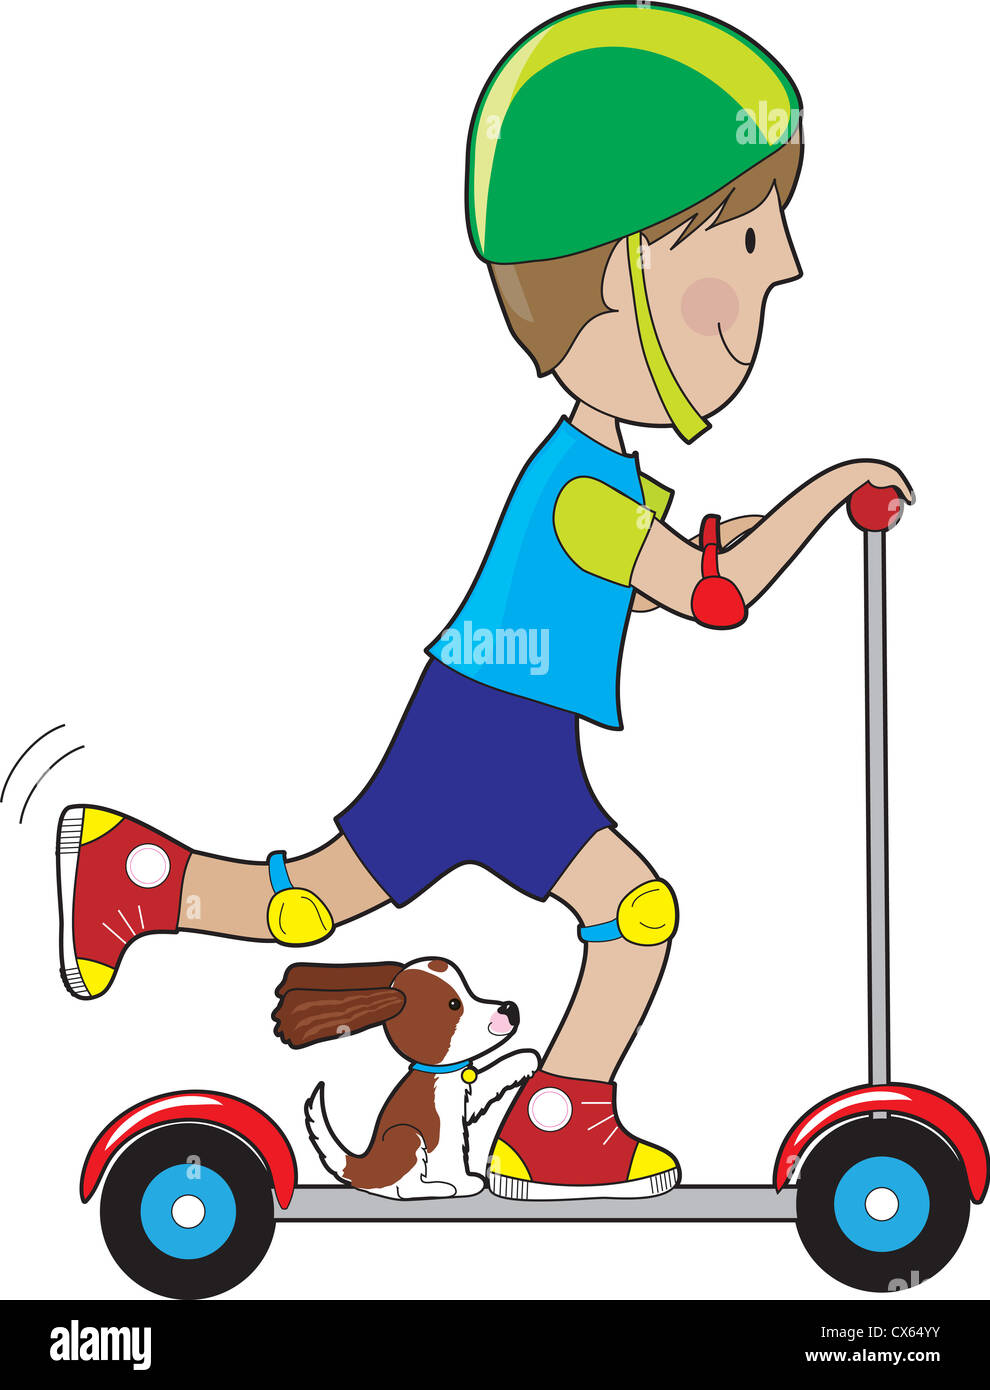 A boy rides his scooter with a pet dog beside his foot, with tail up and ears blowing in the wind. - Stock Image